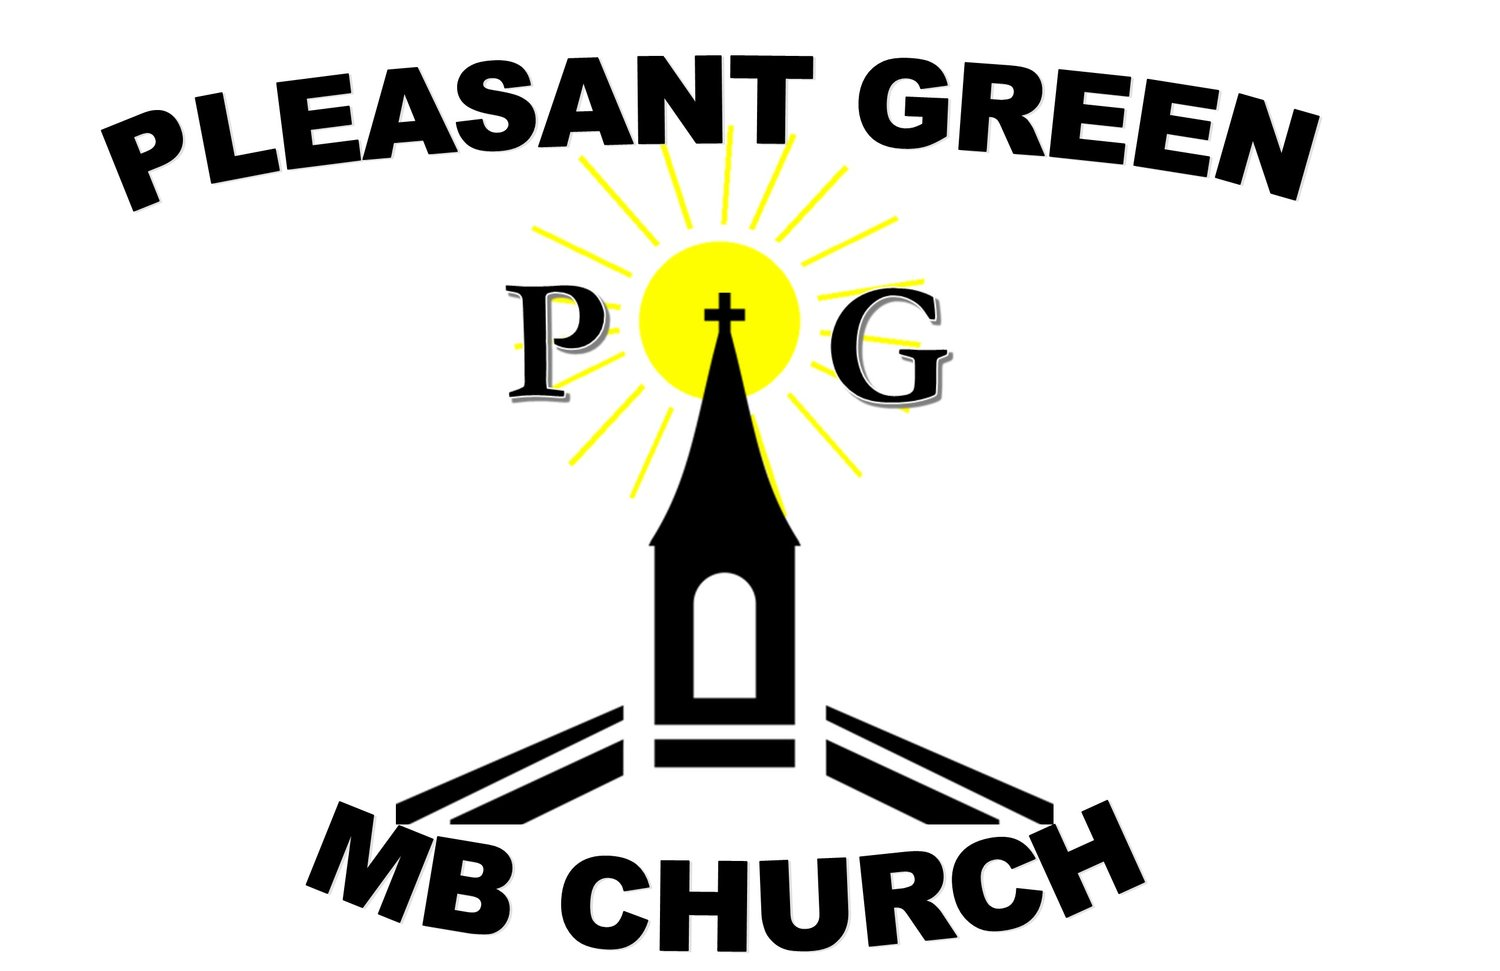 Pleasant Green MB Church